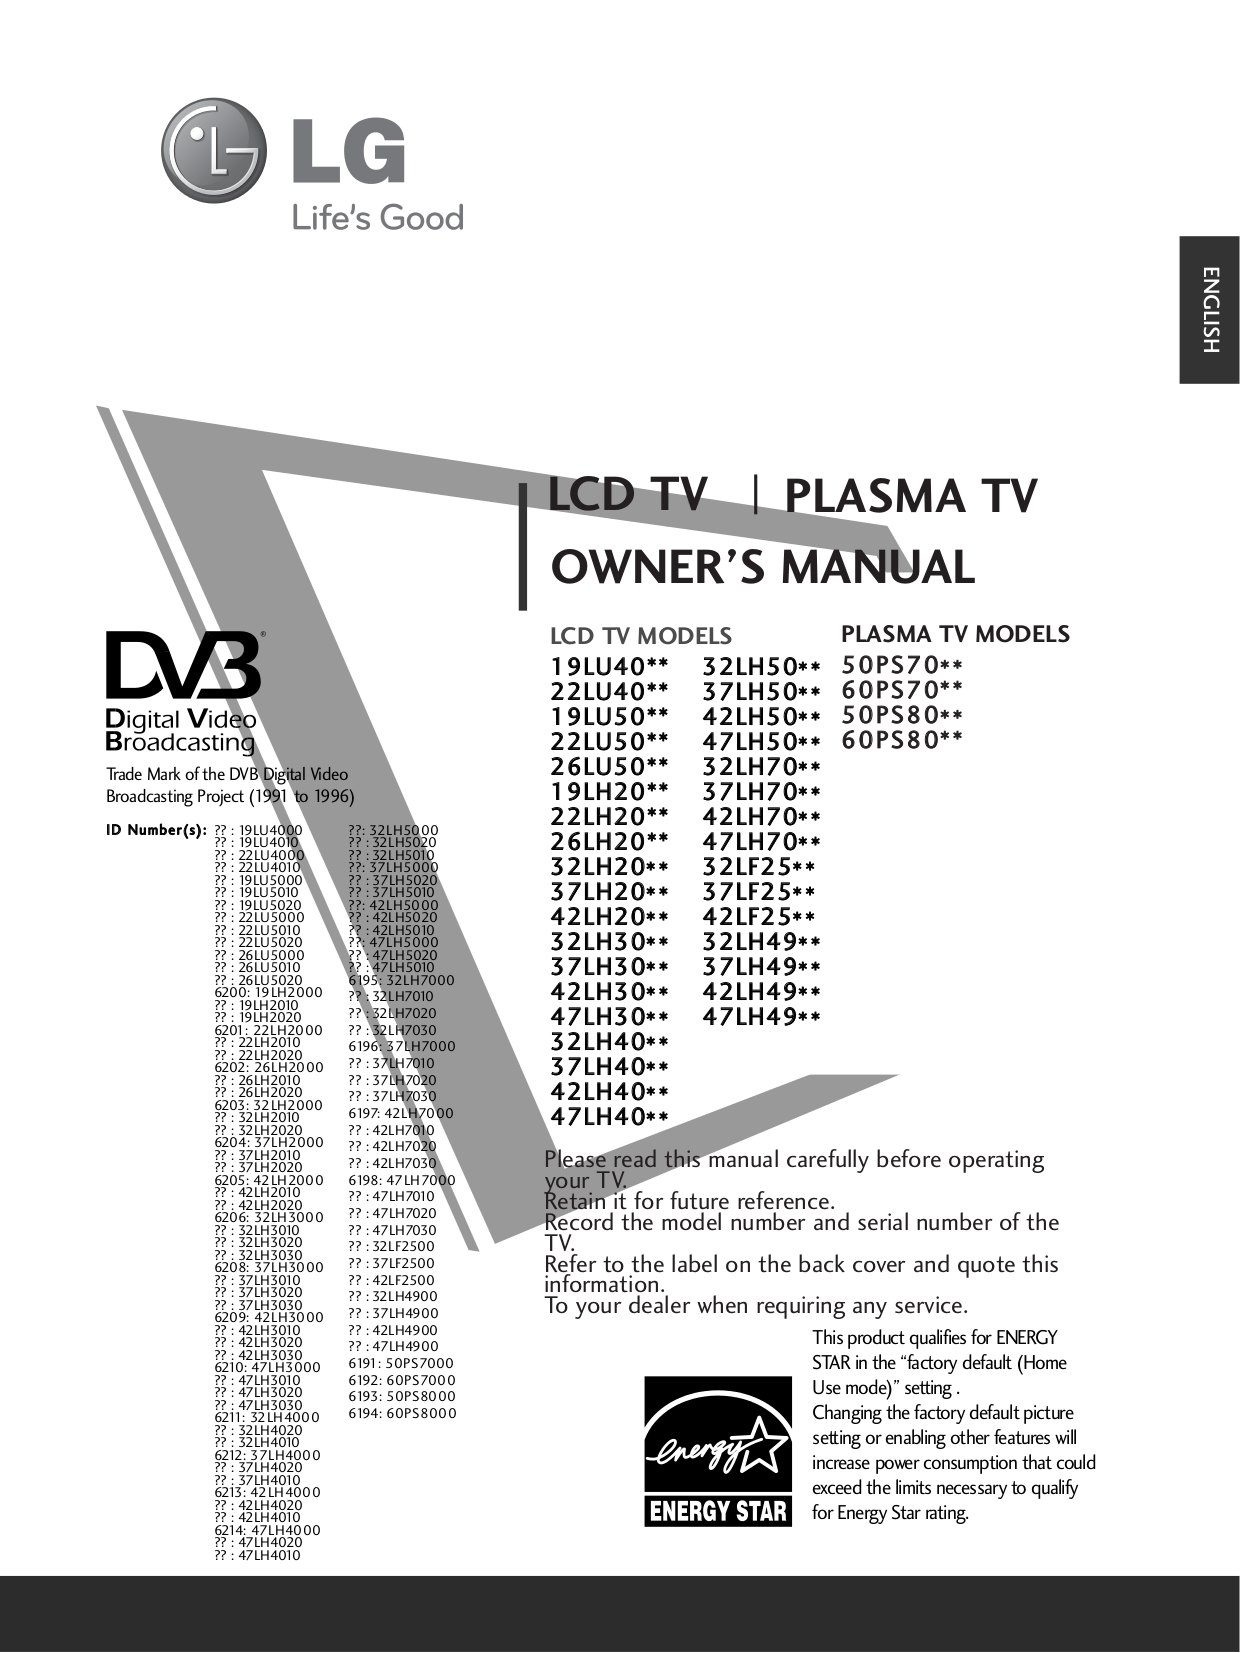 pdf for LG TV 42LH30 manual